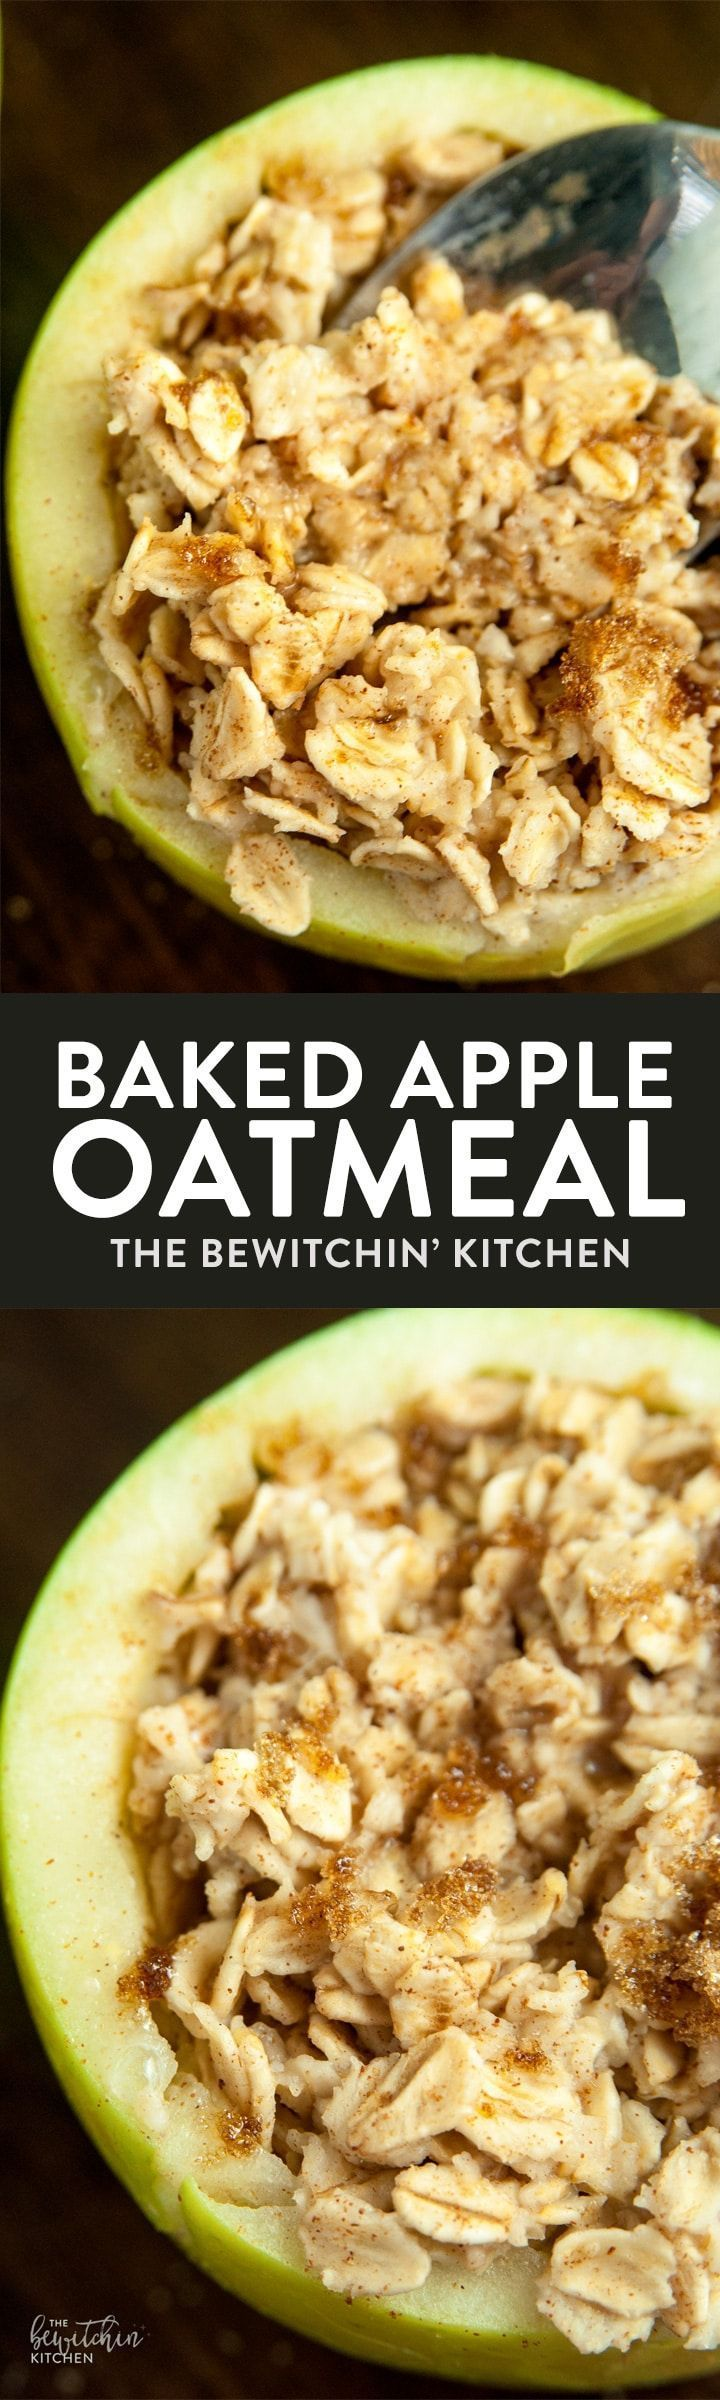 Baked Apple Oatmeal Bowls - an easy breakfast recipe that's ready in under a minute, healthy, and has no clean up! Plus 7 apple hacks.